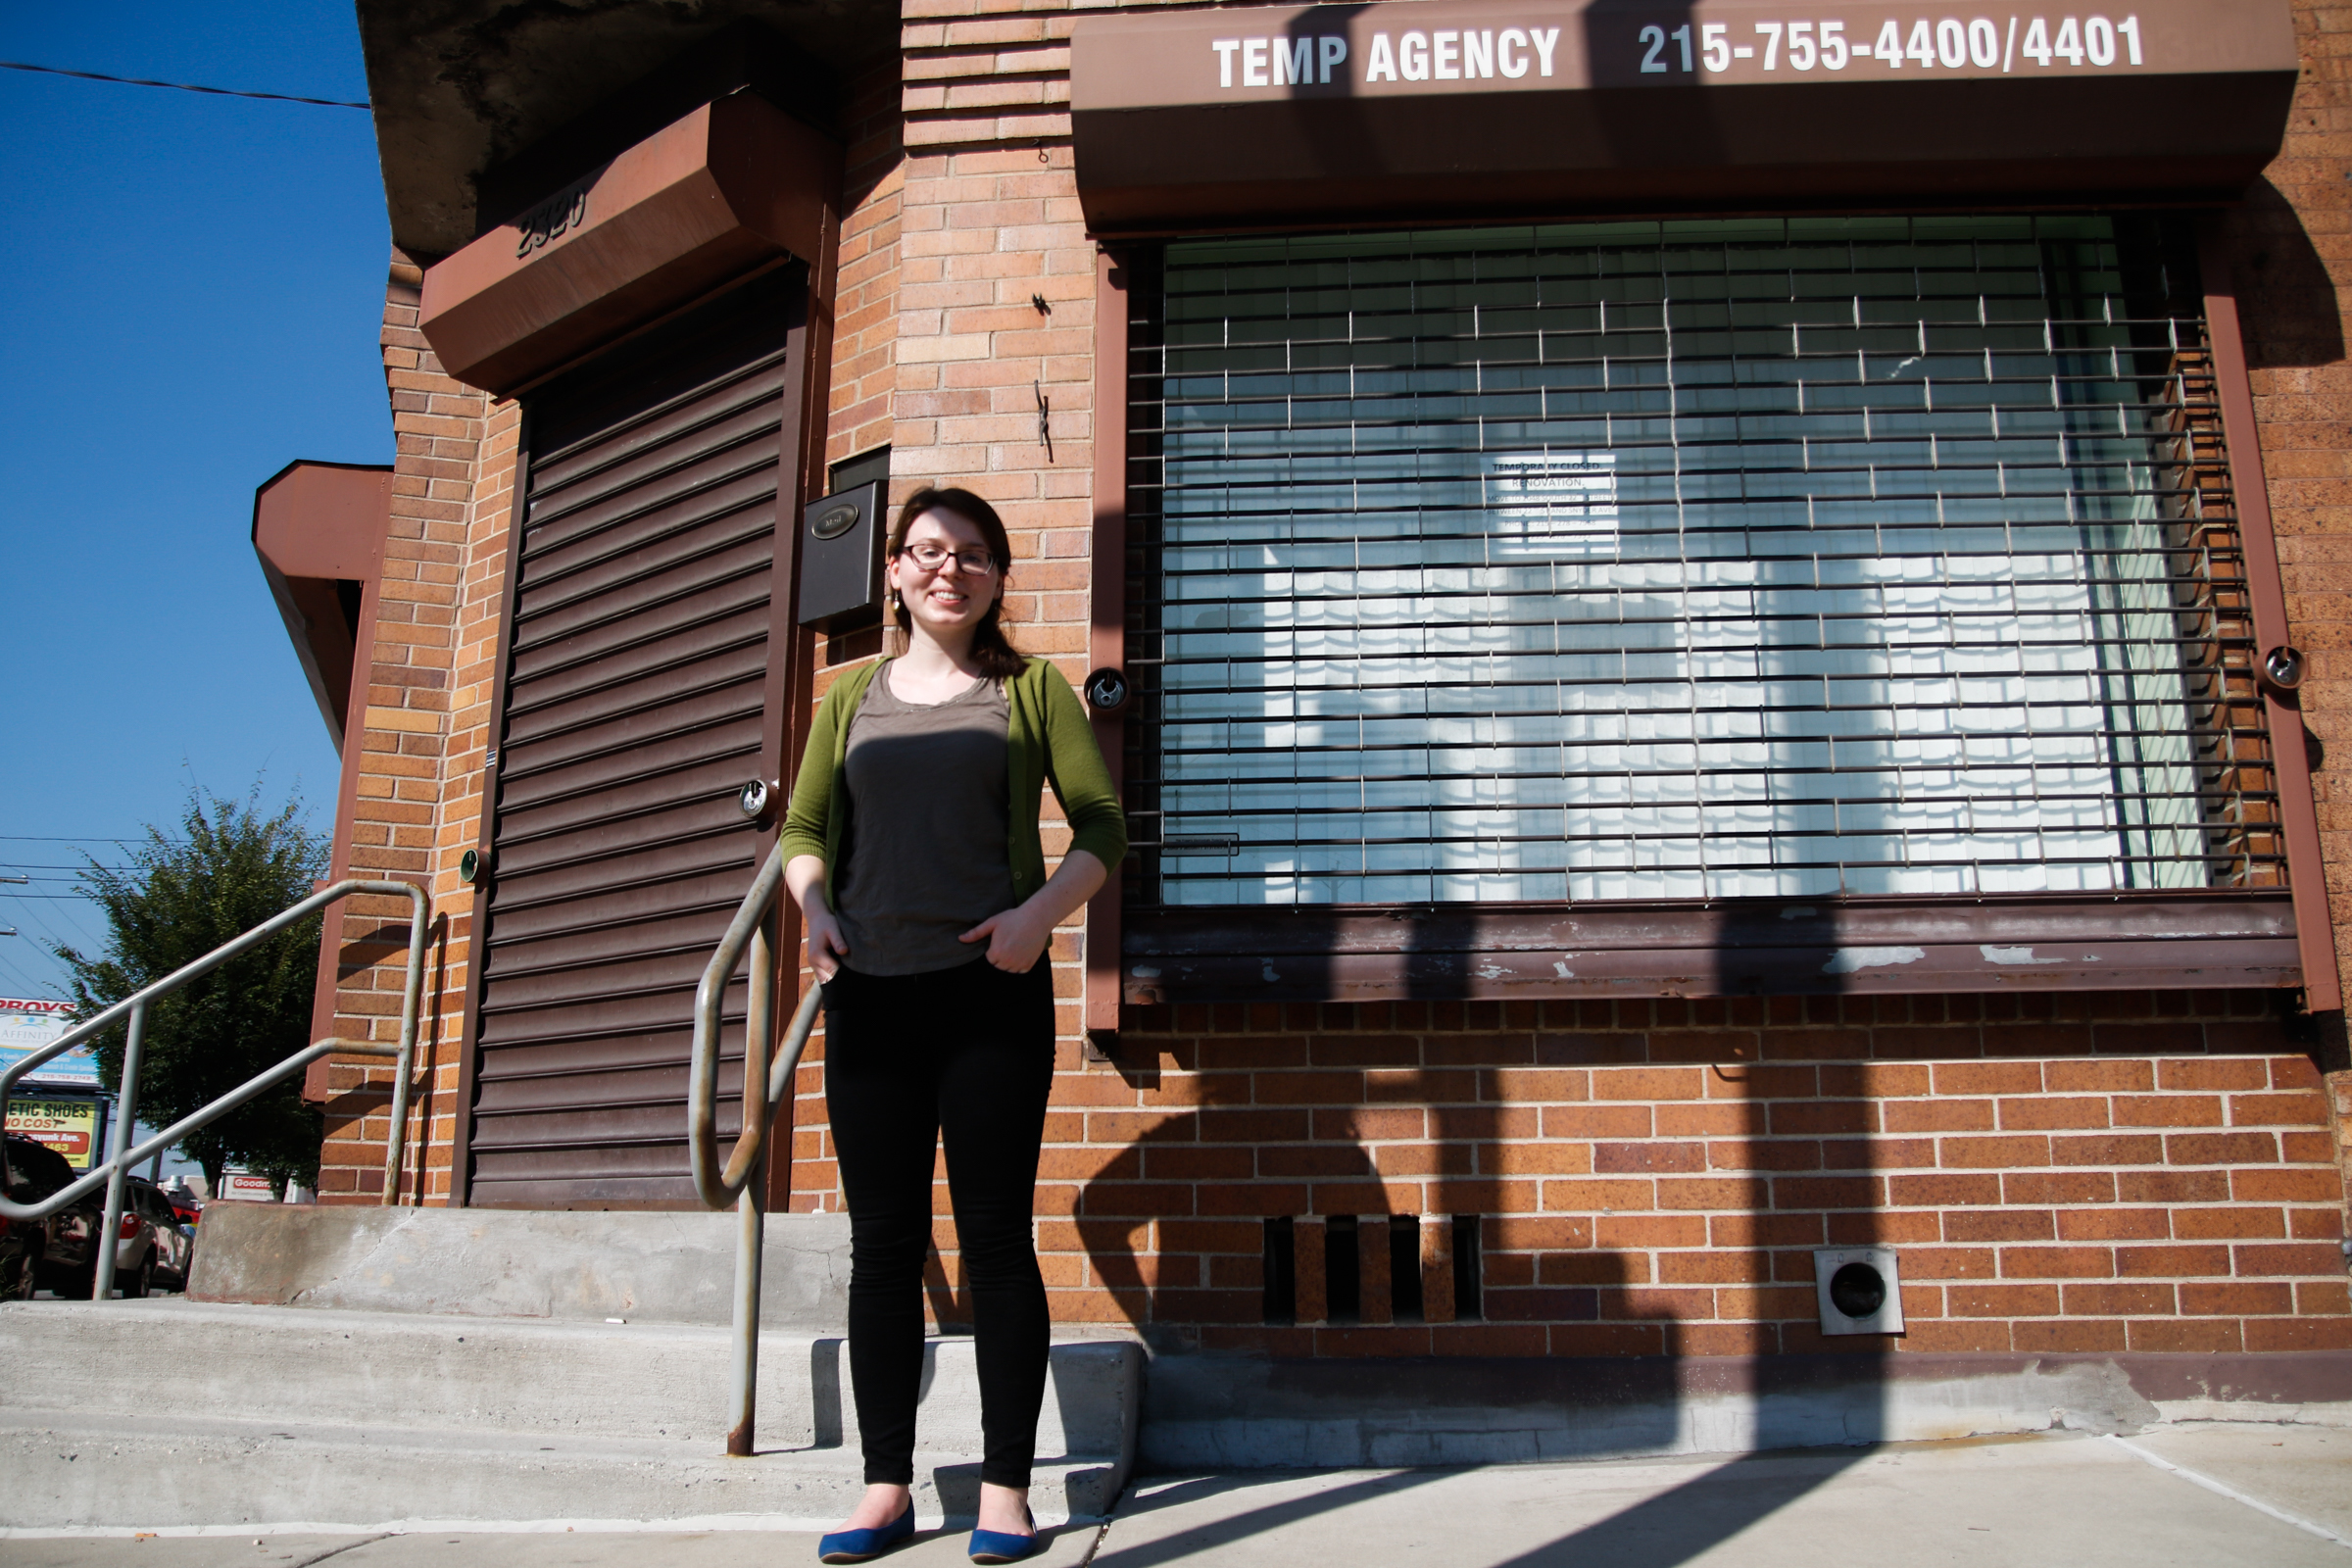 Researcher Rebecca Daily poses for a photo outside a temp agency in South Philadelphia. KAIT MOORE / Staff Photographer